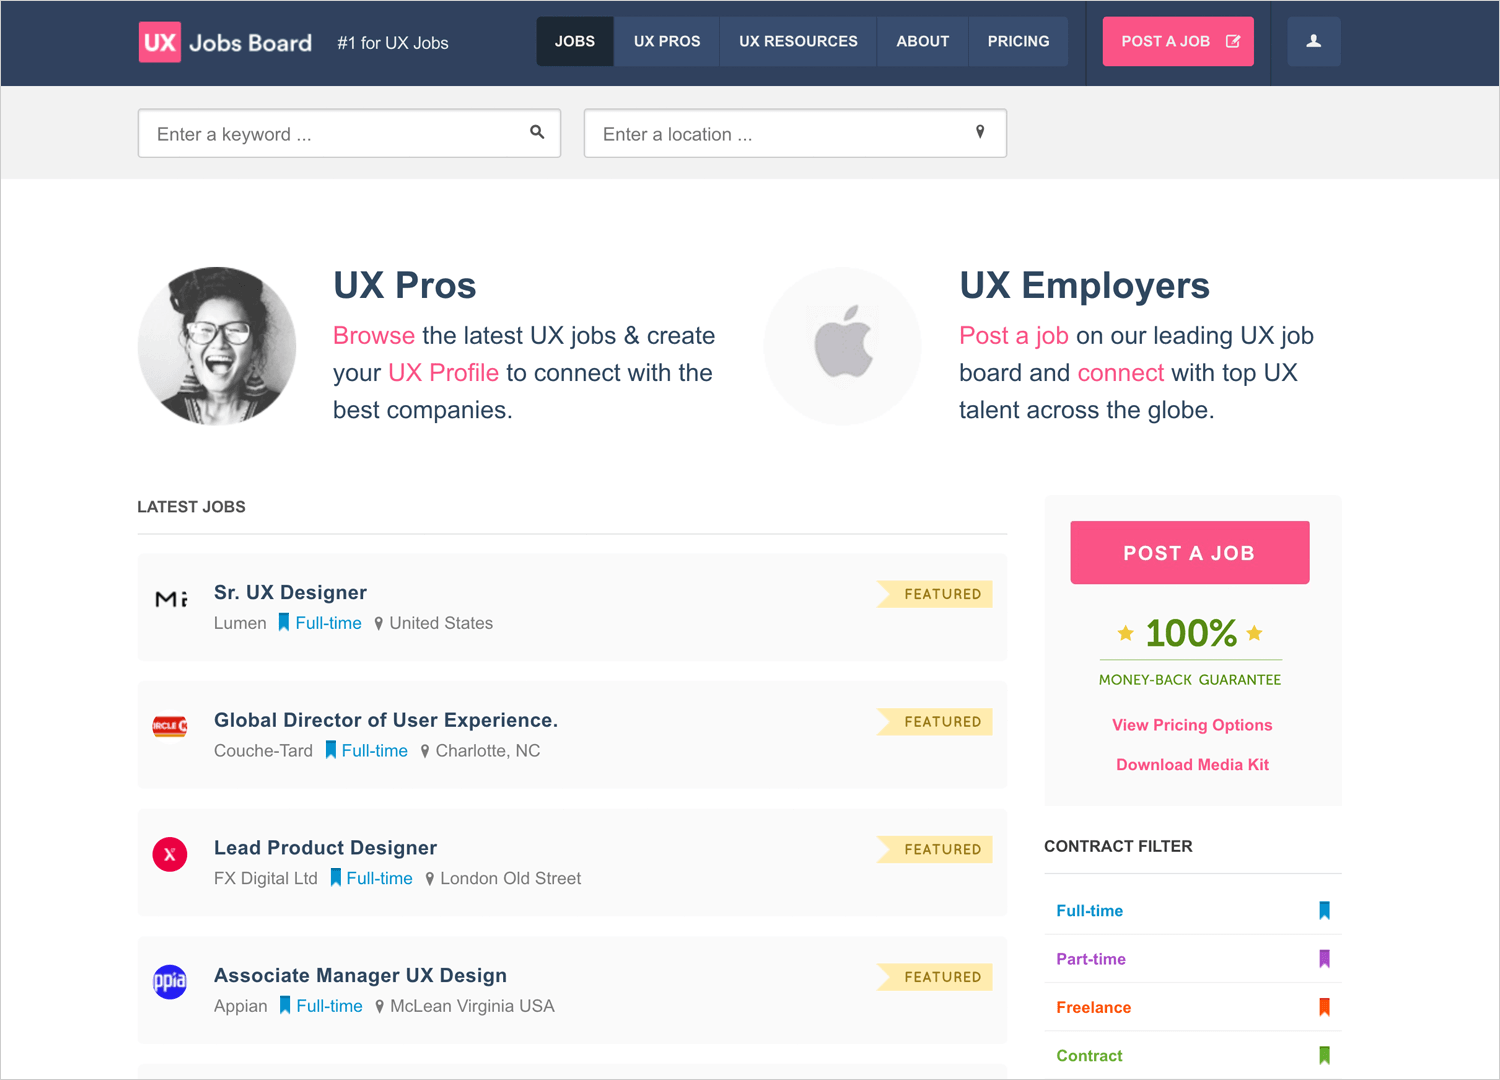 ux design jobs board as place to find design gigs